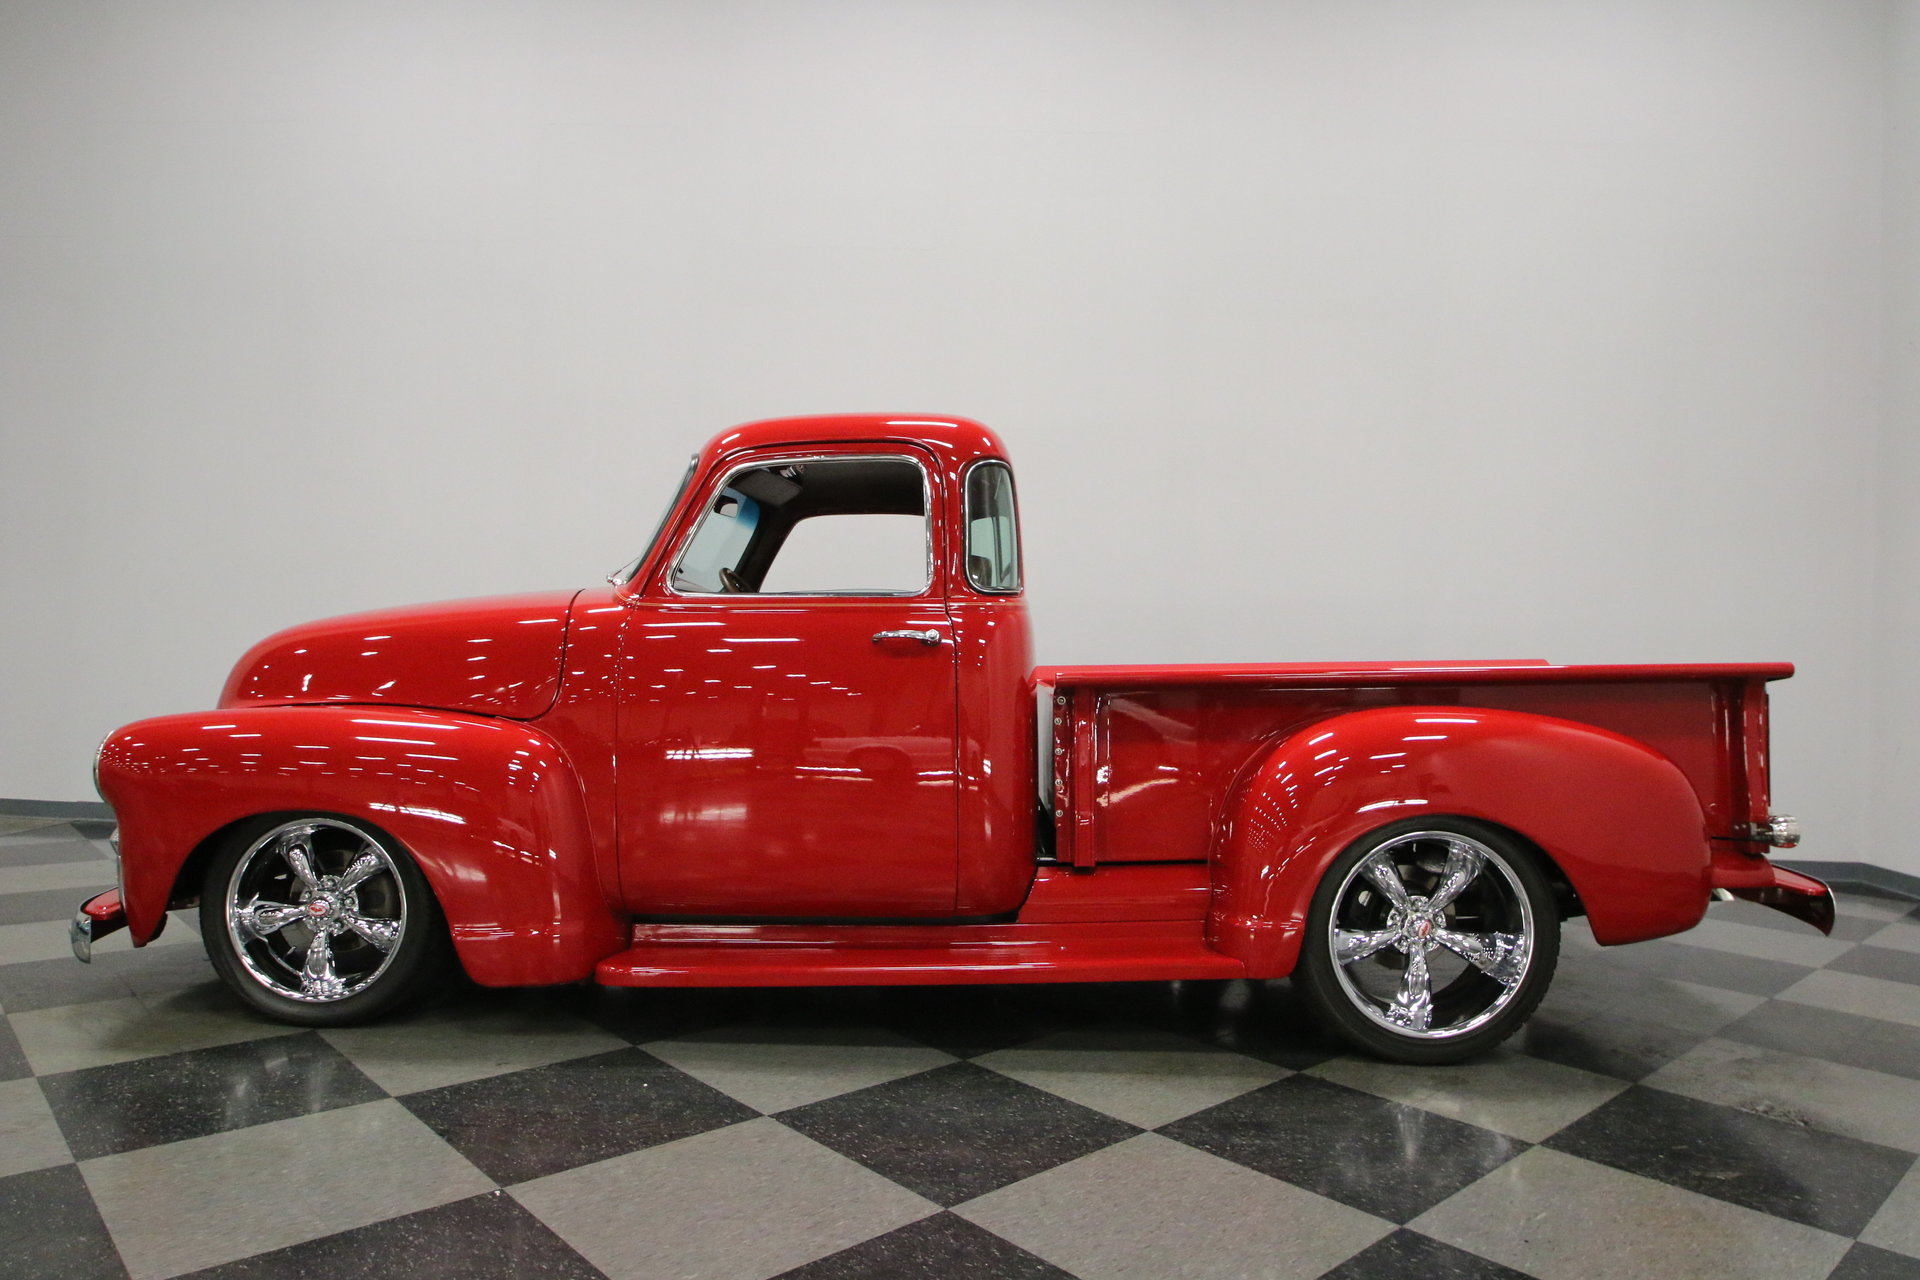 1954 Chevrolet 3100 Streetside Classics The Nations Trusted Chevy Truck Heater Controls Show More Photos